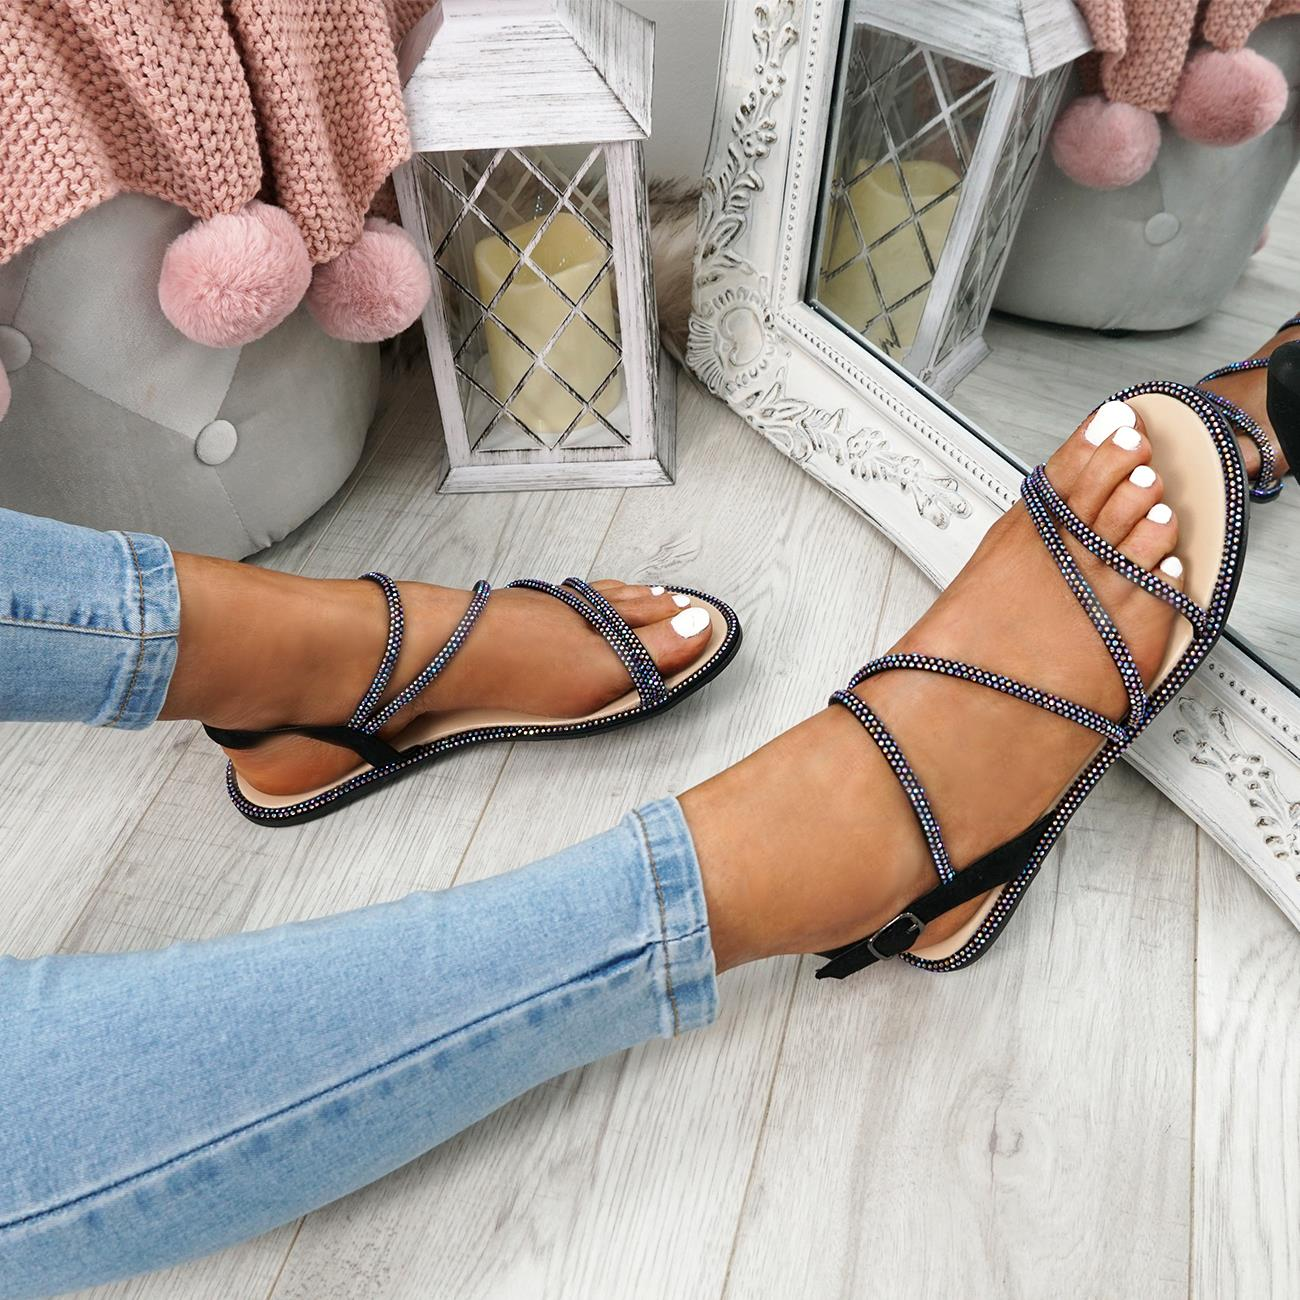 WOMENS-LADIES-STUDDED-ANKLE-STRAP-FLAT-SHOES-PARTY-CLUB-SANDALS-SHOES-SIZE-UK thumbnail 5